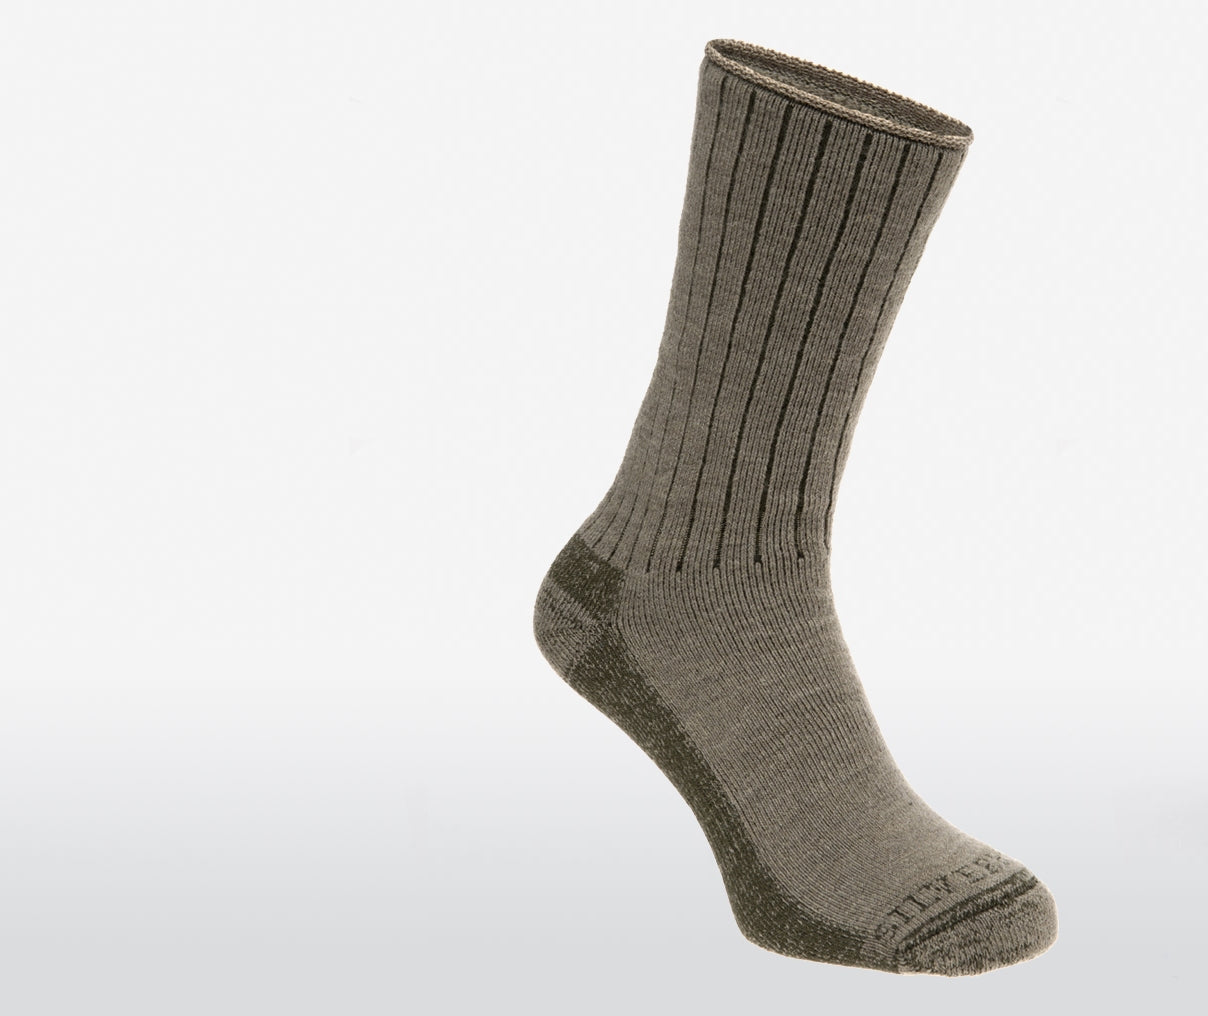 Silverpoint Soft Top Merino Wool Hiking and Travel Sock - Trailblazer Outdoors, Pickering